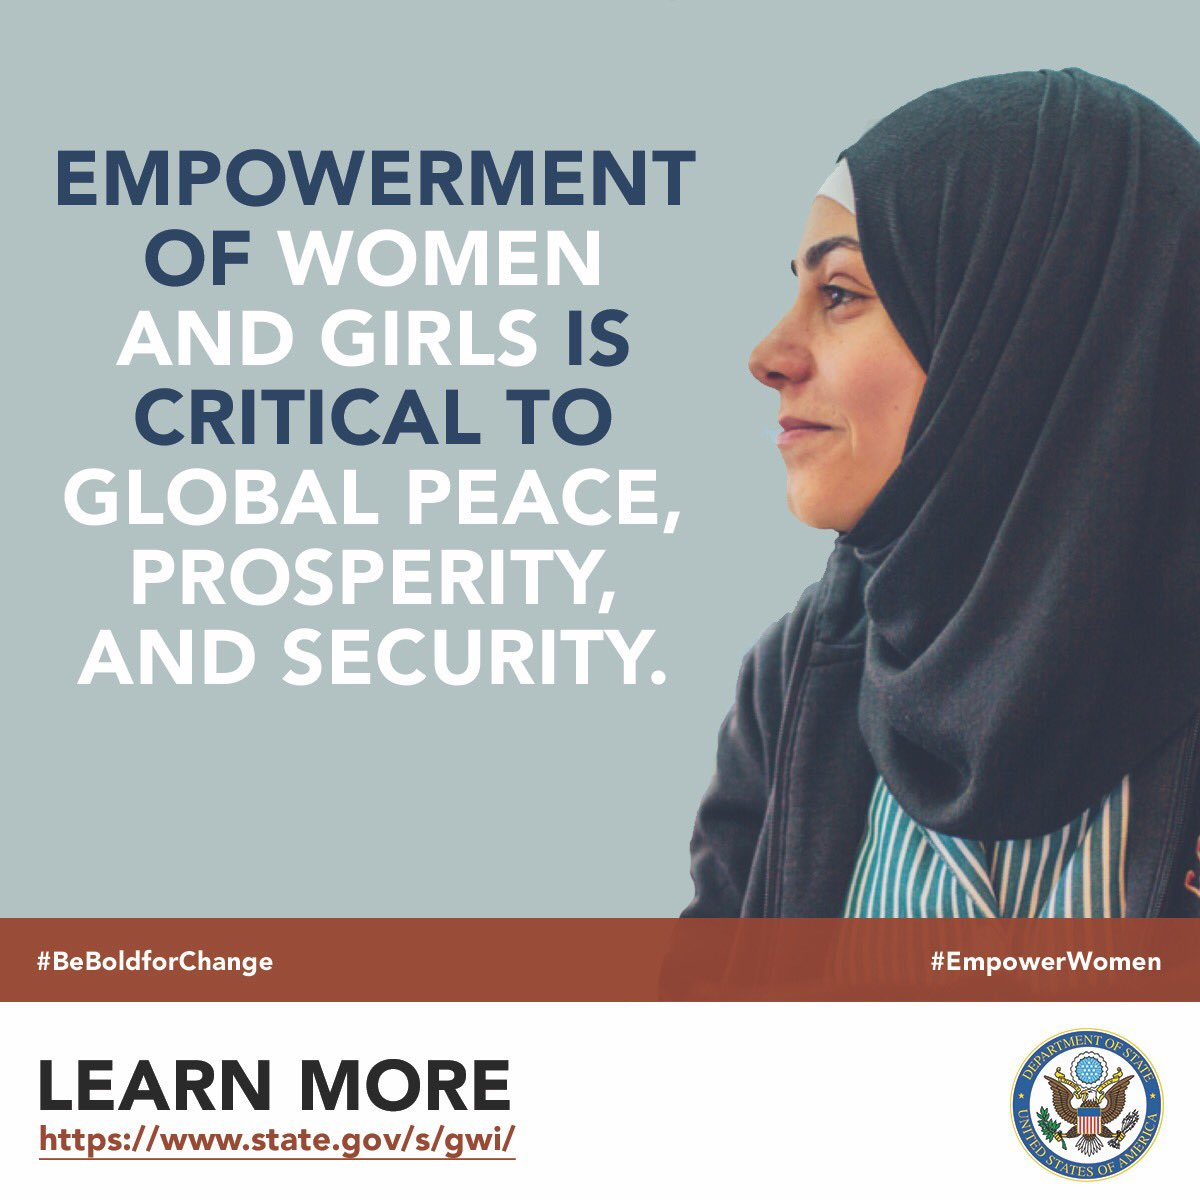 99 years ago today, women got the right to vote in the USA.  In Qatar, men and women got the right to vote at the same time, in 1999.   Today is Women's Equality Day, but smart societies practice that every day. #USAinQatar  @GenderAtState https://t.co/W1GYyaajvU